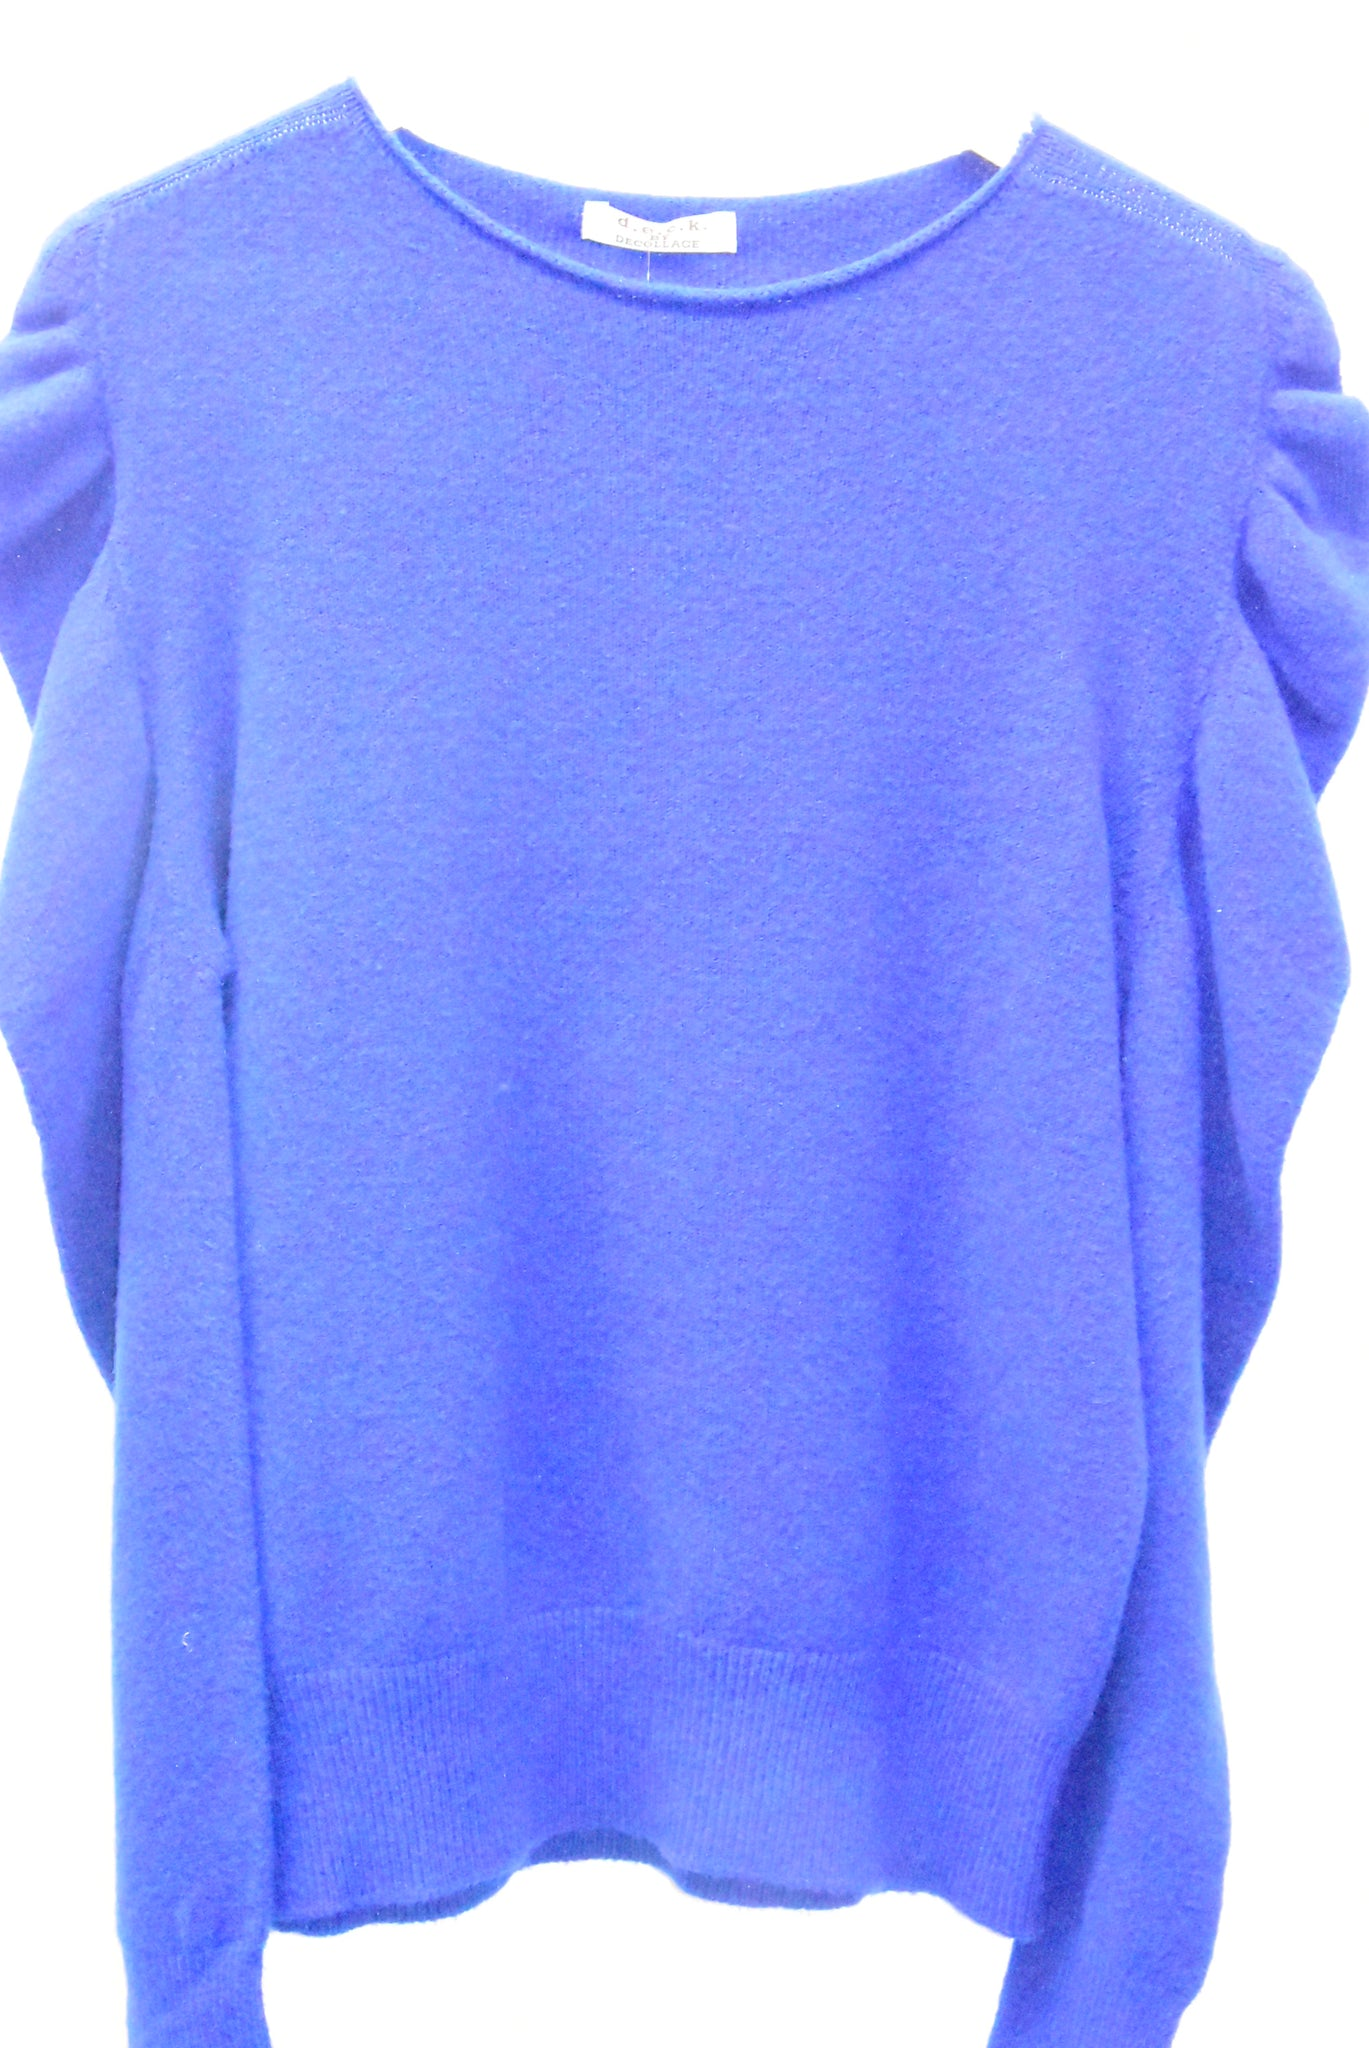 Royal Blue Jumper With Ruffle Sleeves